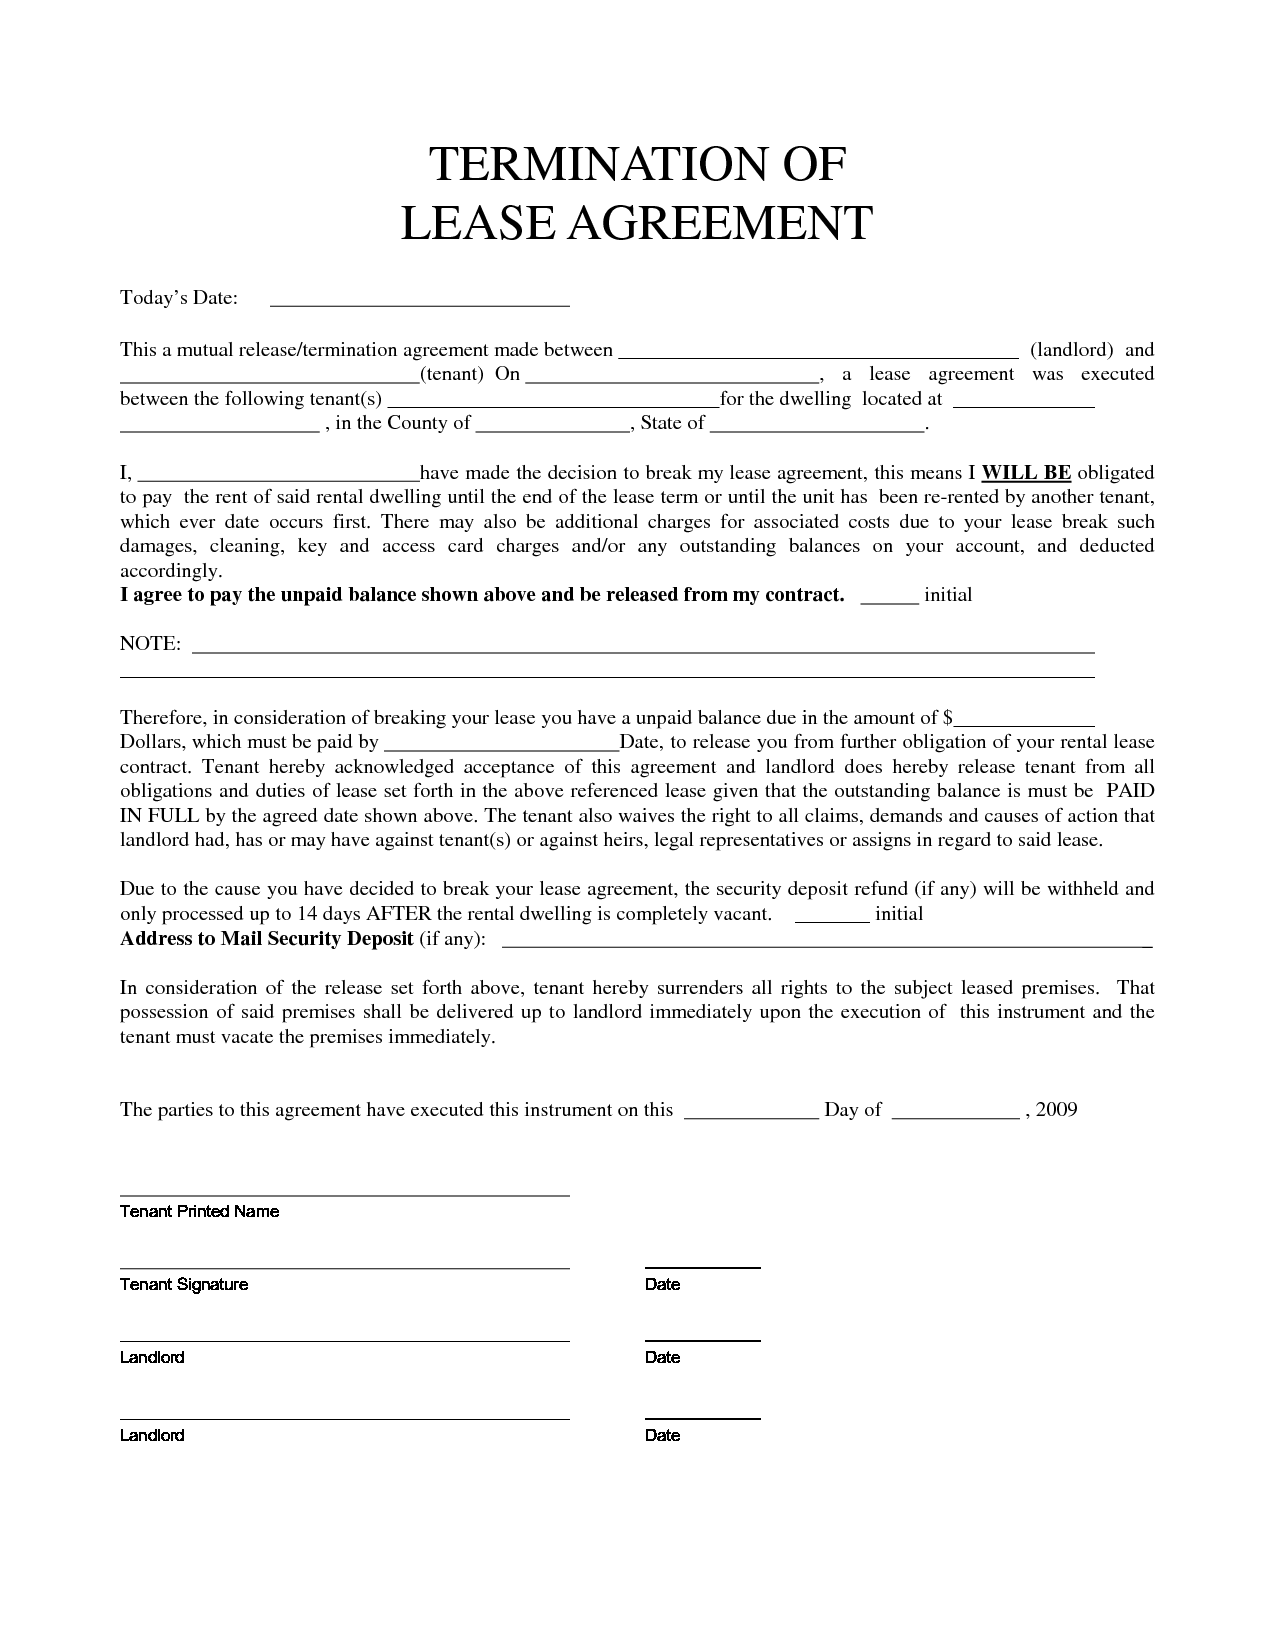 Personal Property Rental Agreement Forms – Basic Rental Agreement Letter Template